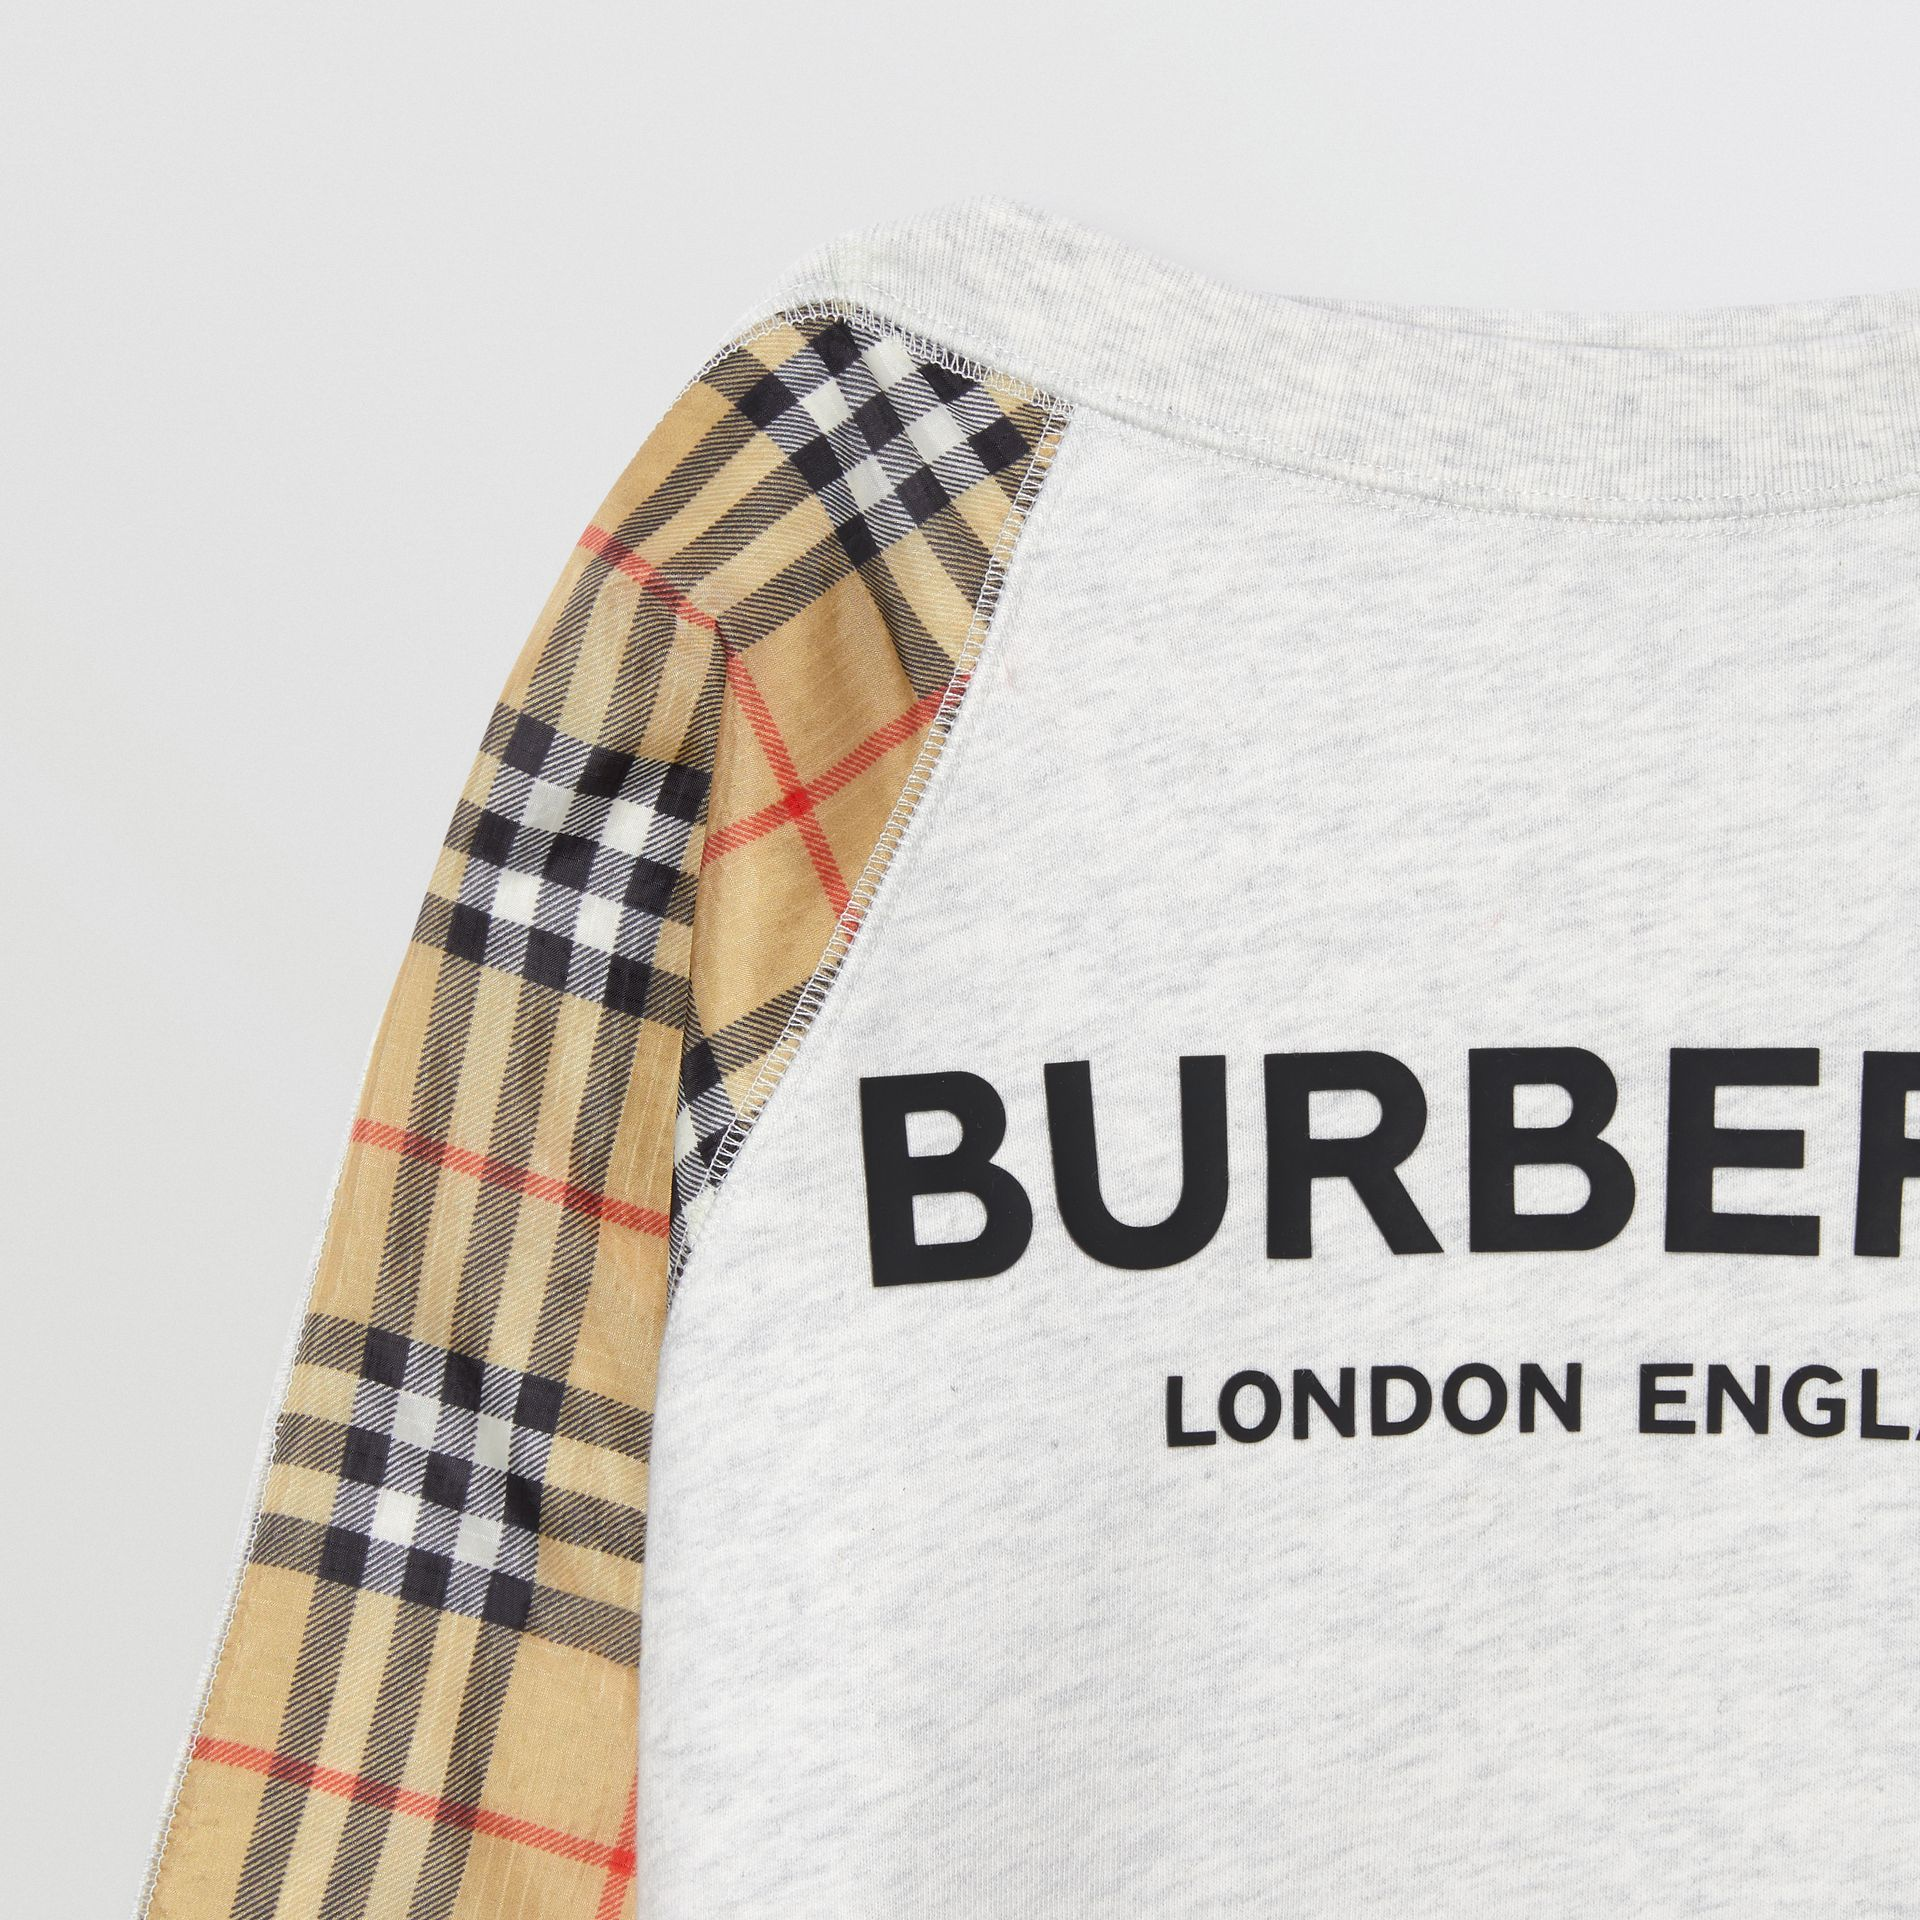 Sweat-shirt en coton avec logo et Vintage check (Camaïeu De Blancs) | Burberry - photo de la galerie 5